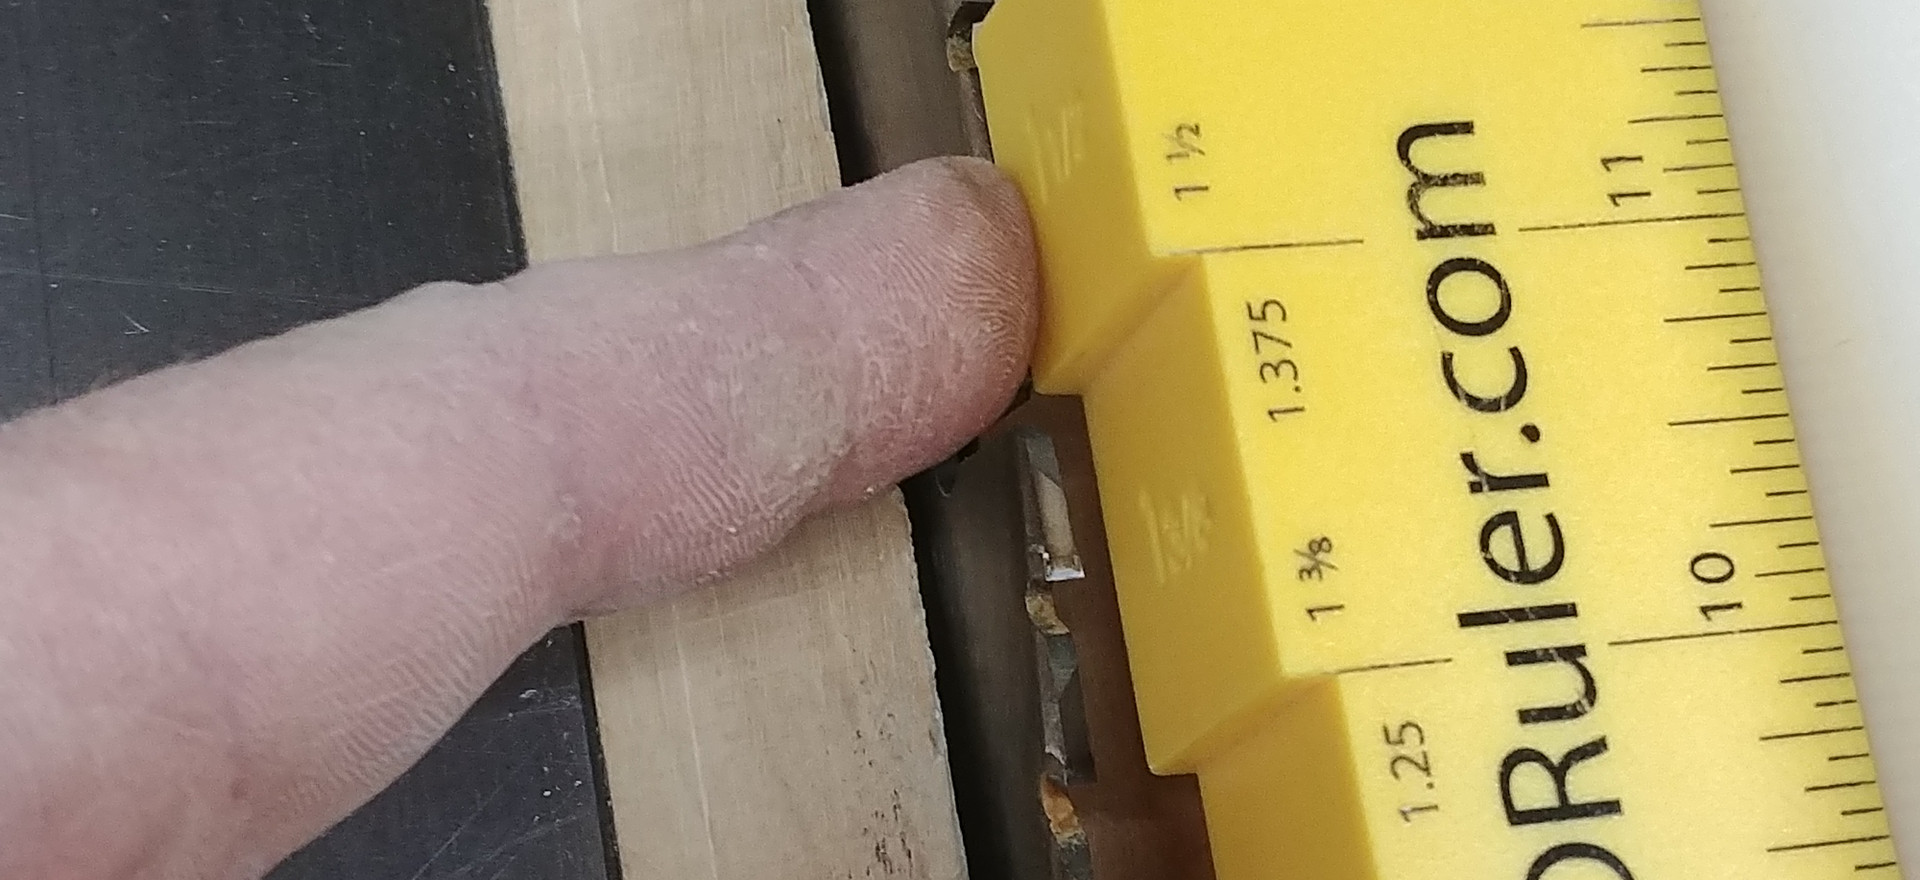 Rabbet cuts- Measure exactly to outside of blade